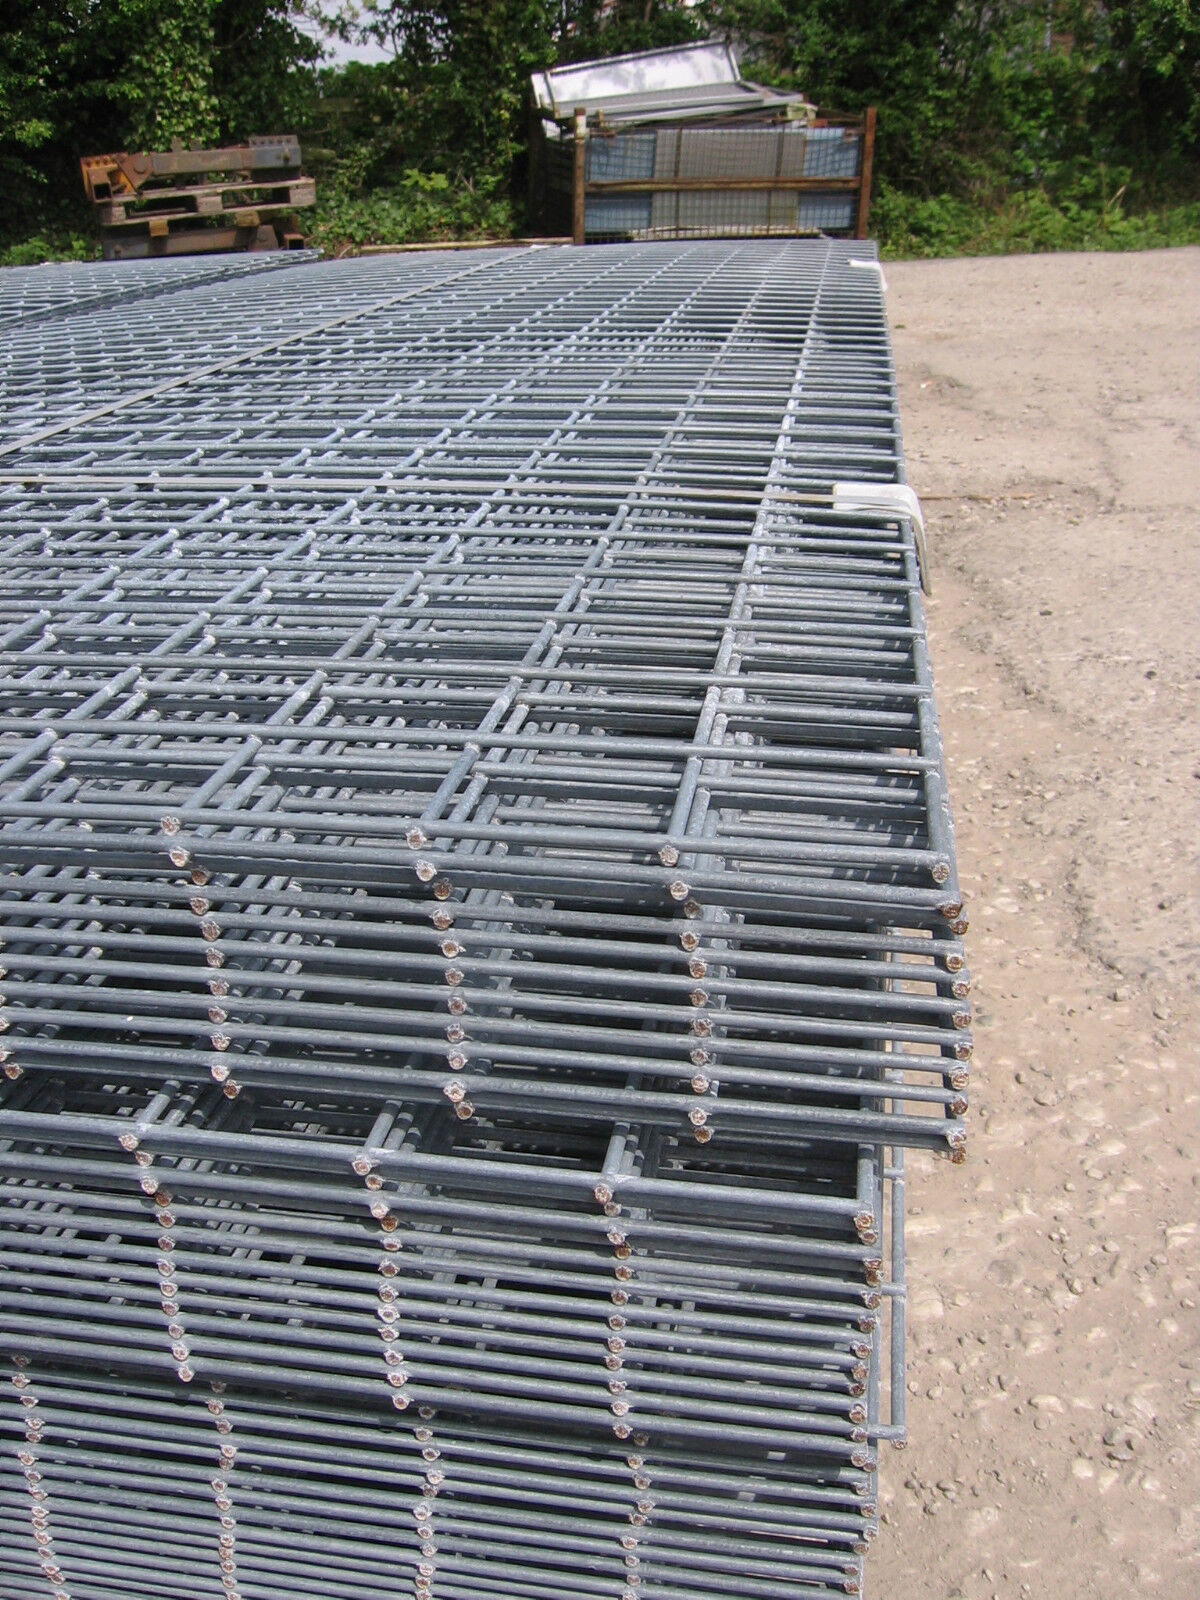 1 Galvanised Steel Mesh Panel Approx 9ft X 3ft6 With 3ins Holes ...